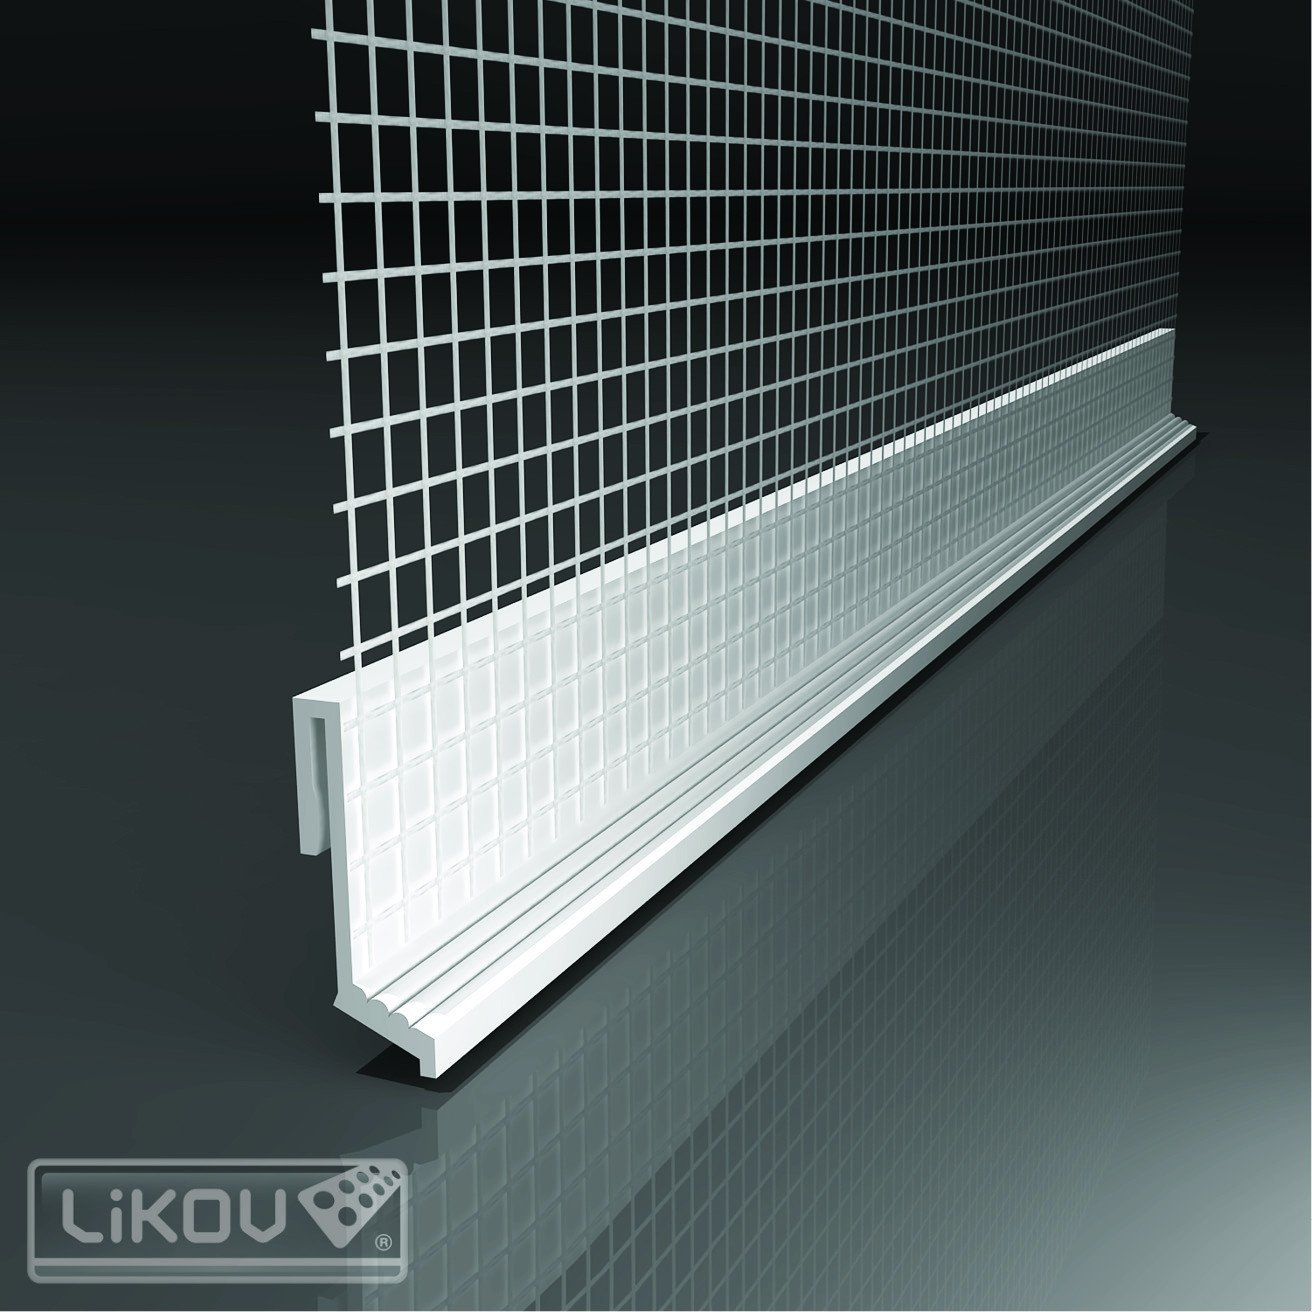 Drip Ledge mesh for External Wall Insulation Base Profiles - Clip On